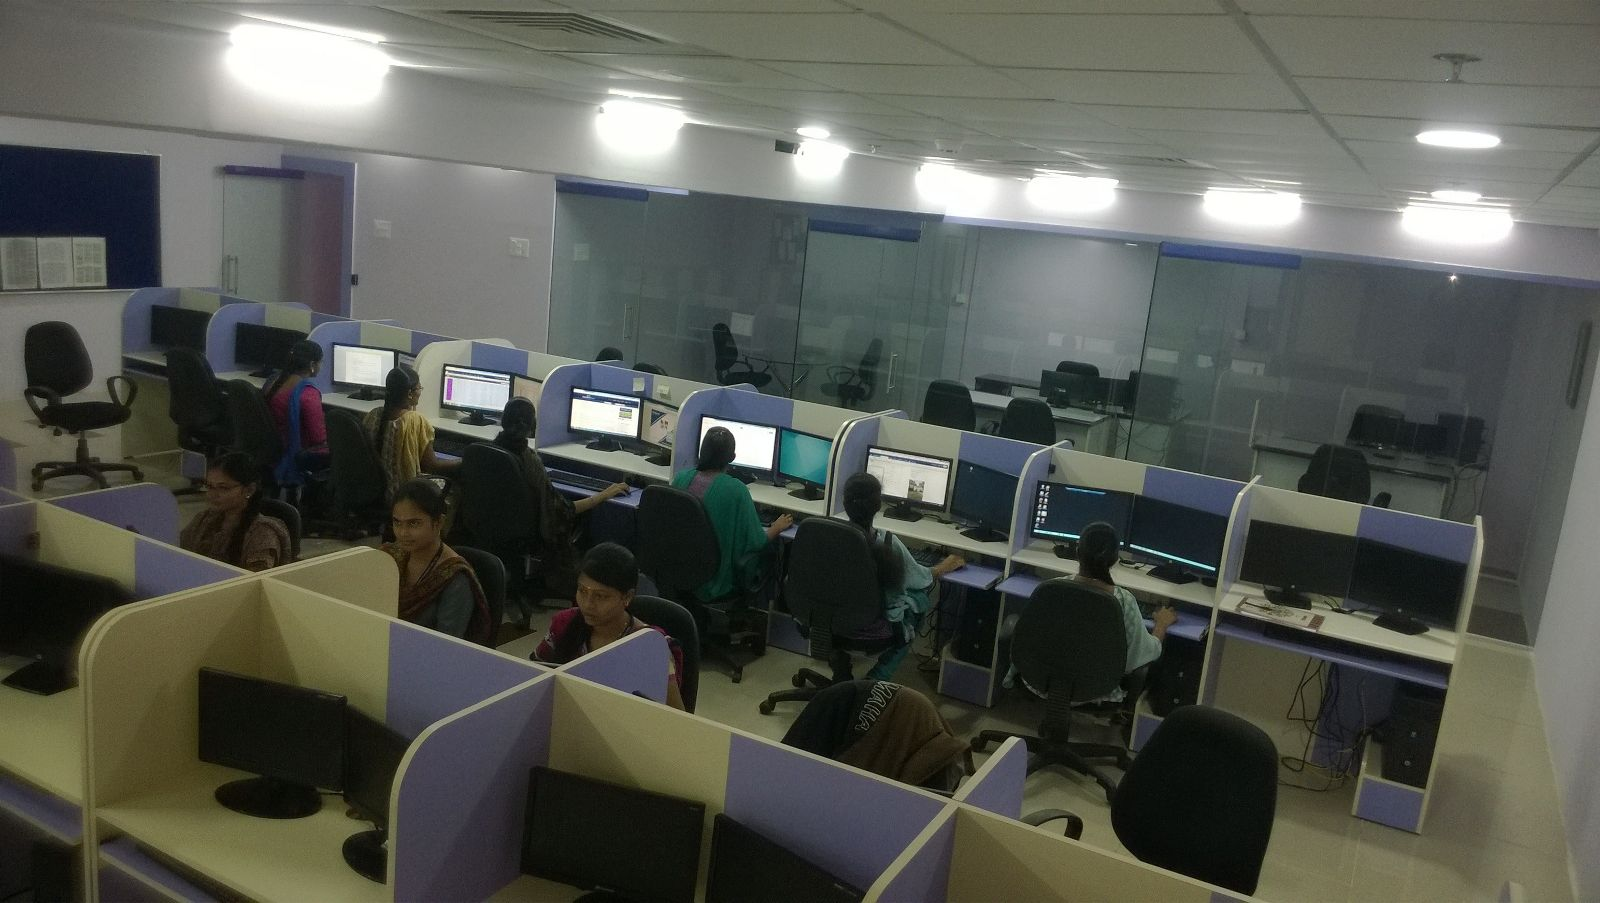 Well Established and Profitable Bpo, Kpo & Call Centre Business for Sale in Coimbatore